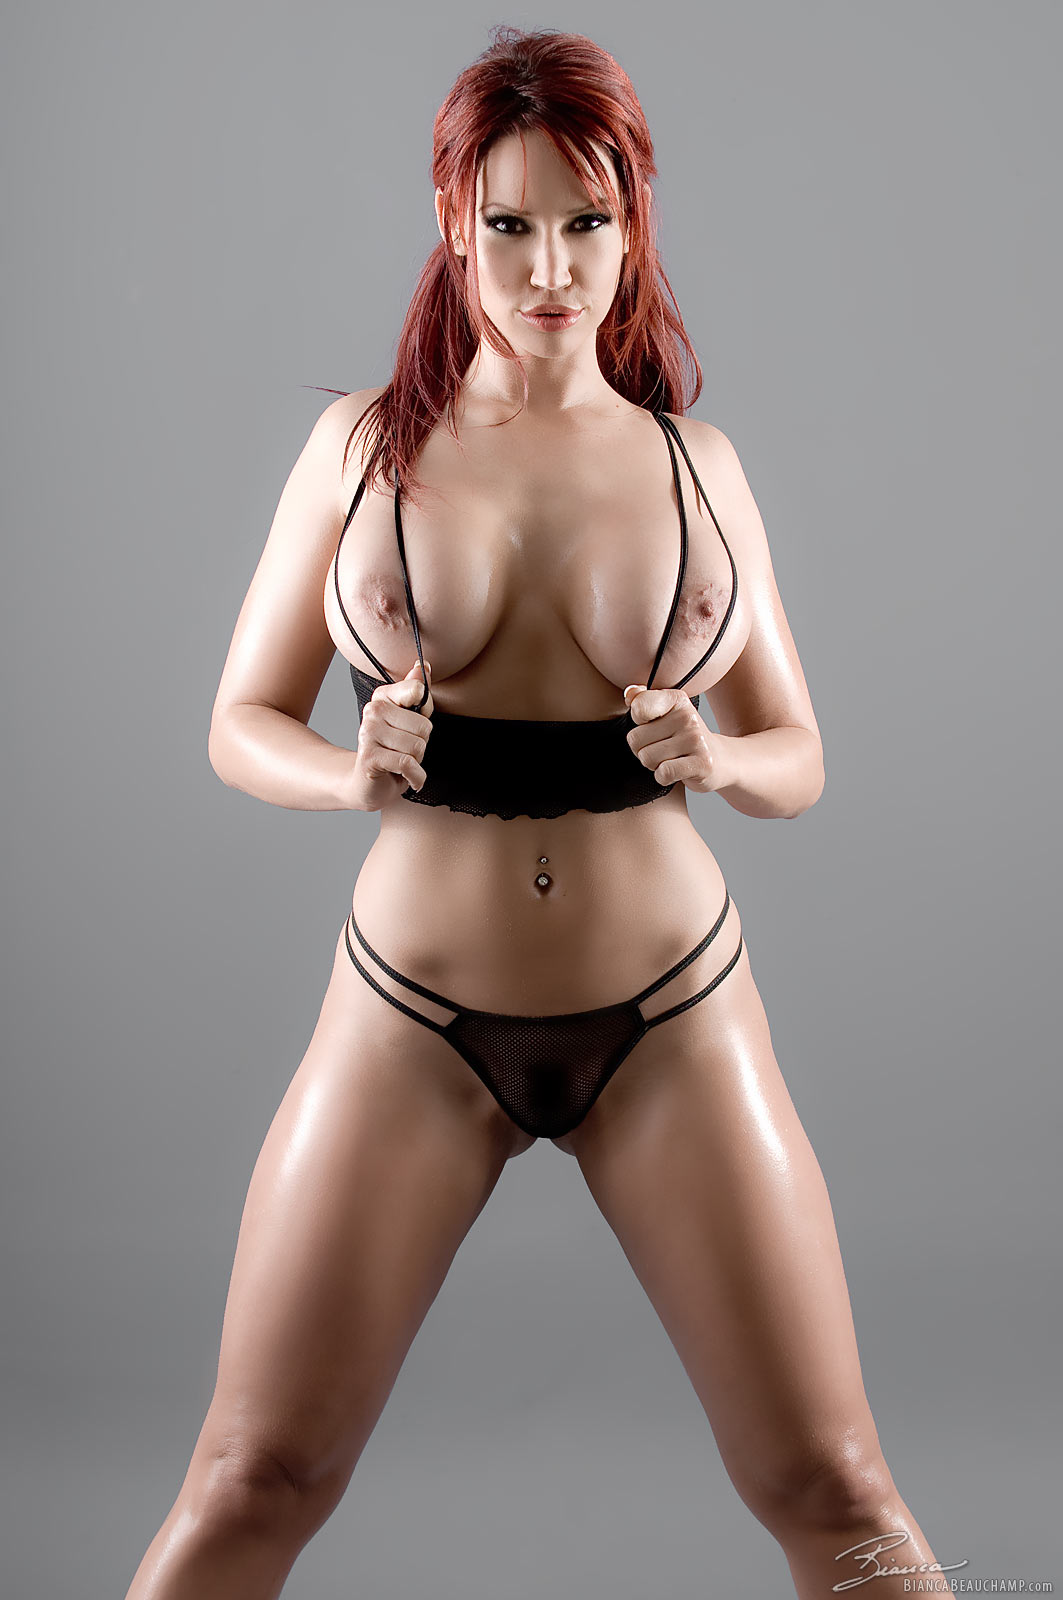 Bianca beauchamp on all fours